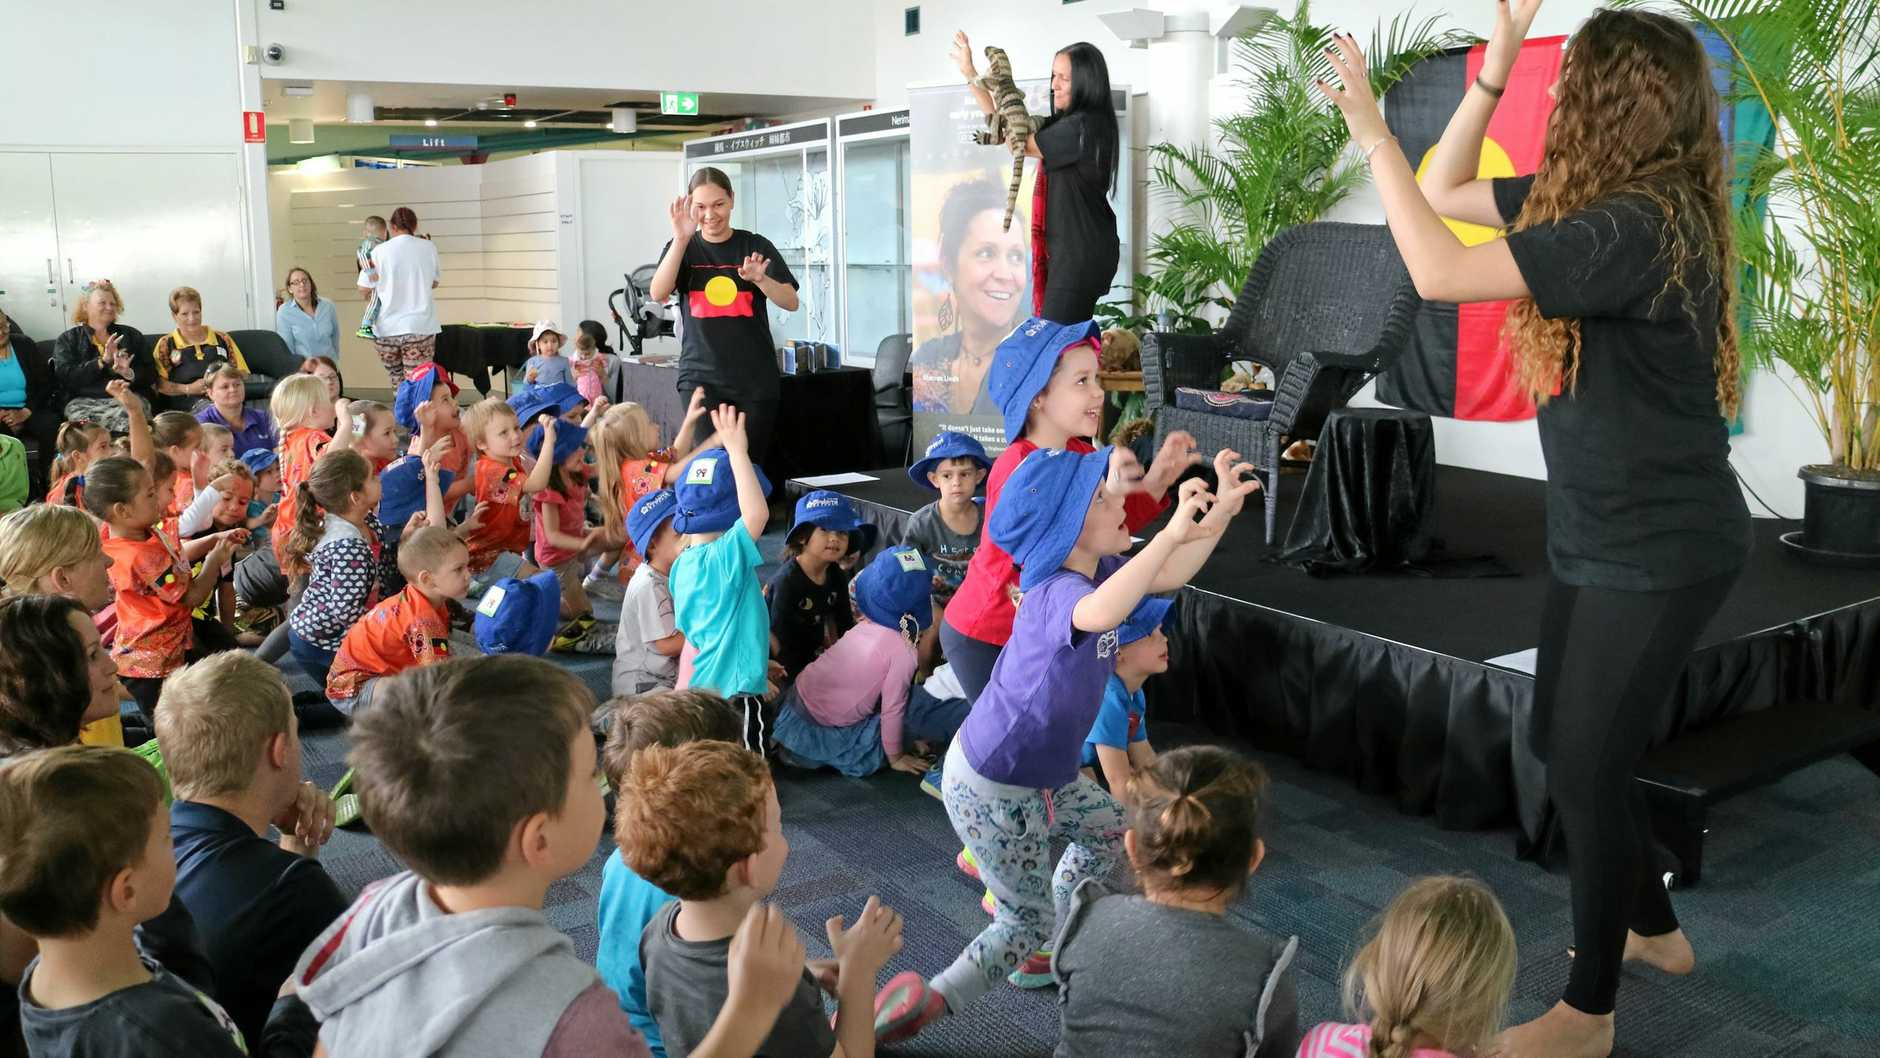 Aunty Sharron Lindh (on stage) with her daughter Jessica Midgely (right) and niece Tianhi Boschman (left) singing to the children at Ipswich Central Library.